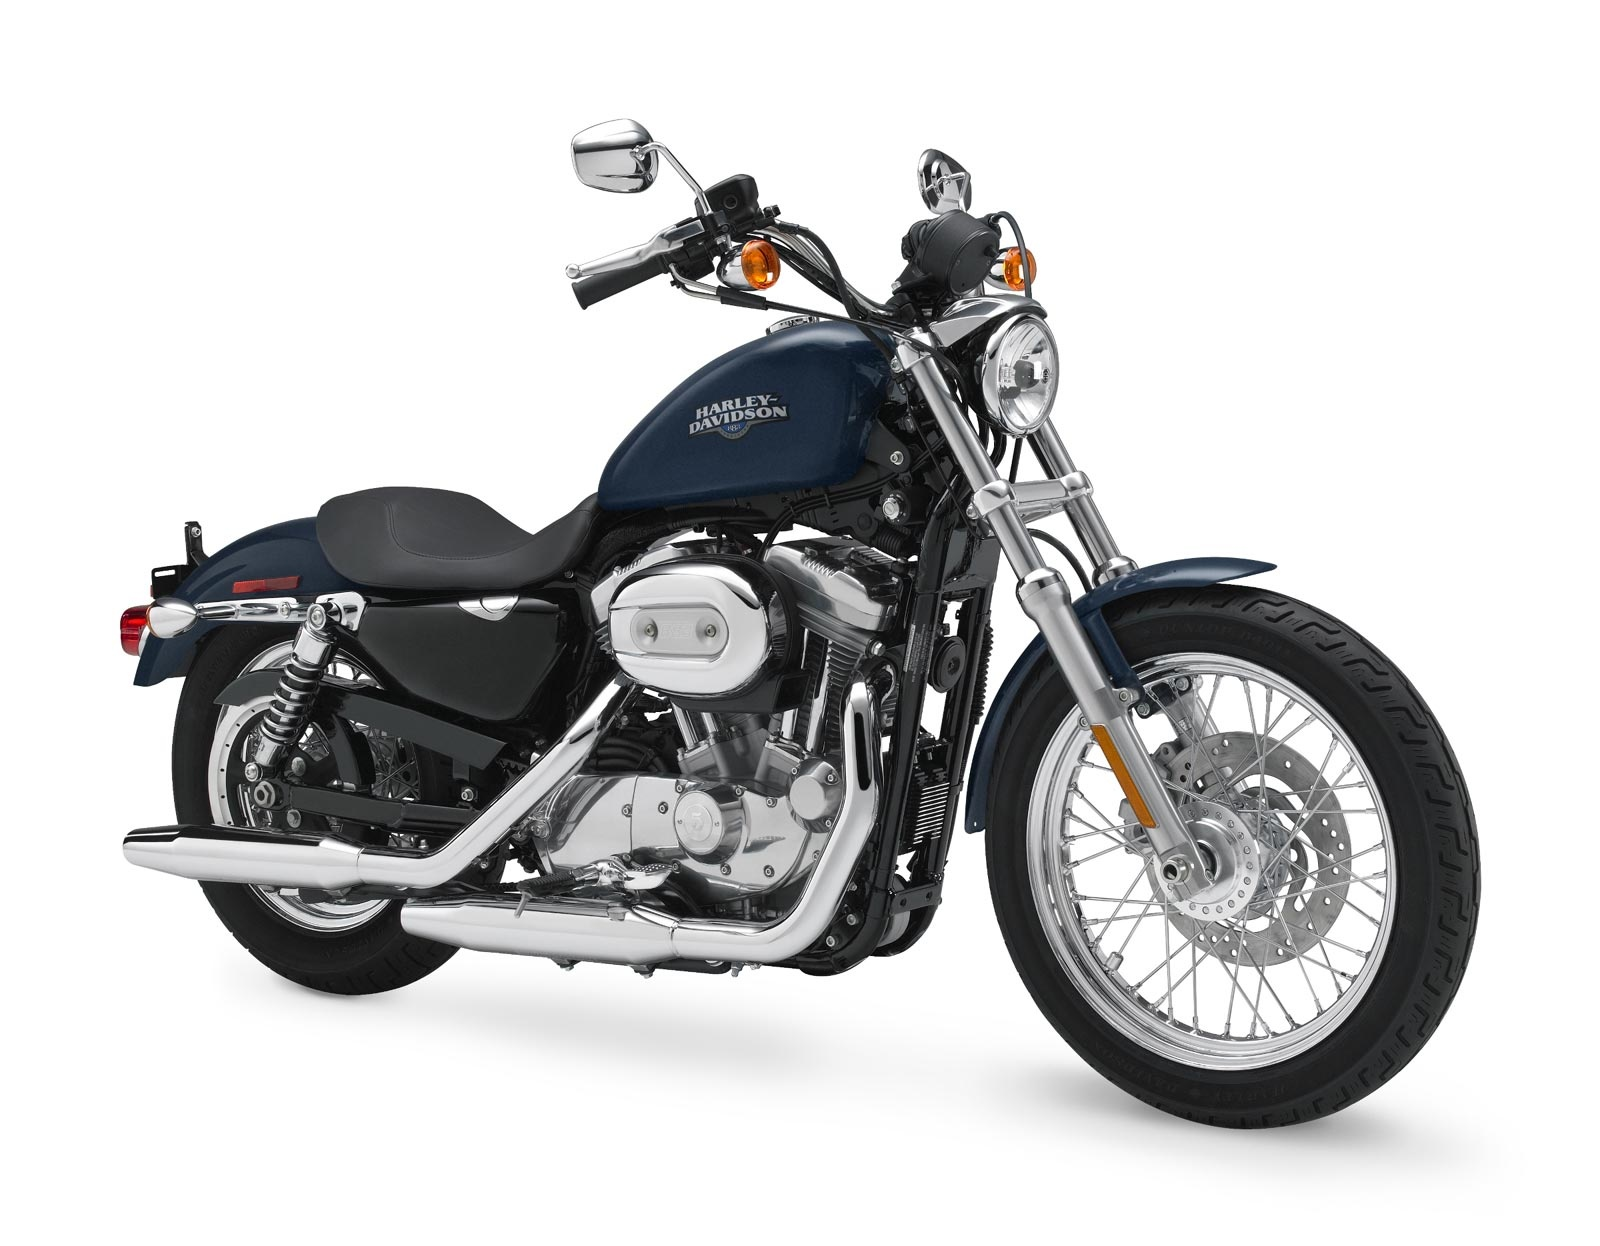 2008 HARLEY DAVIDSON SPORTSTER MOTORCYCLE SERVICE REPAIR MANUAL